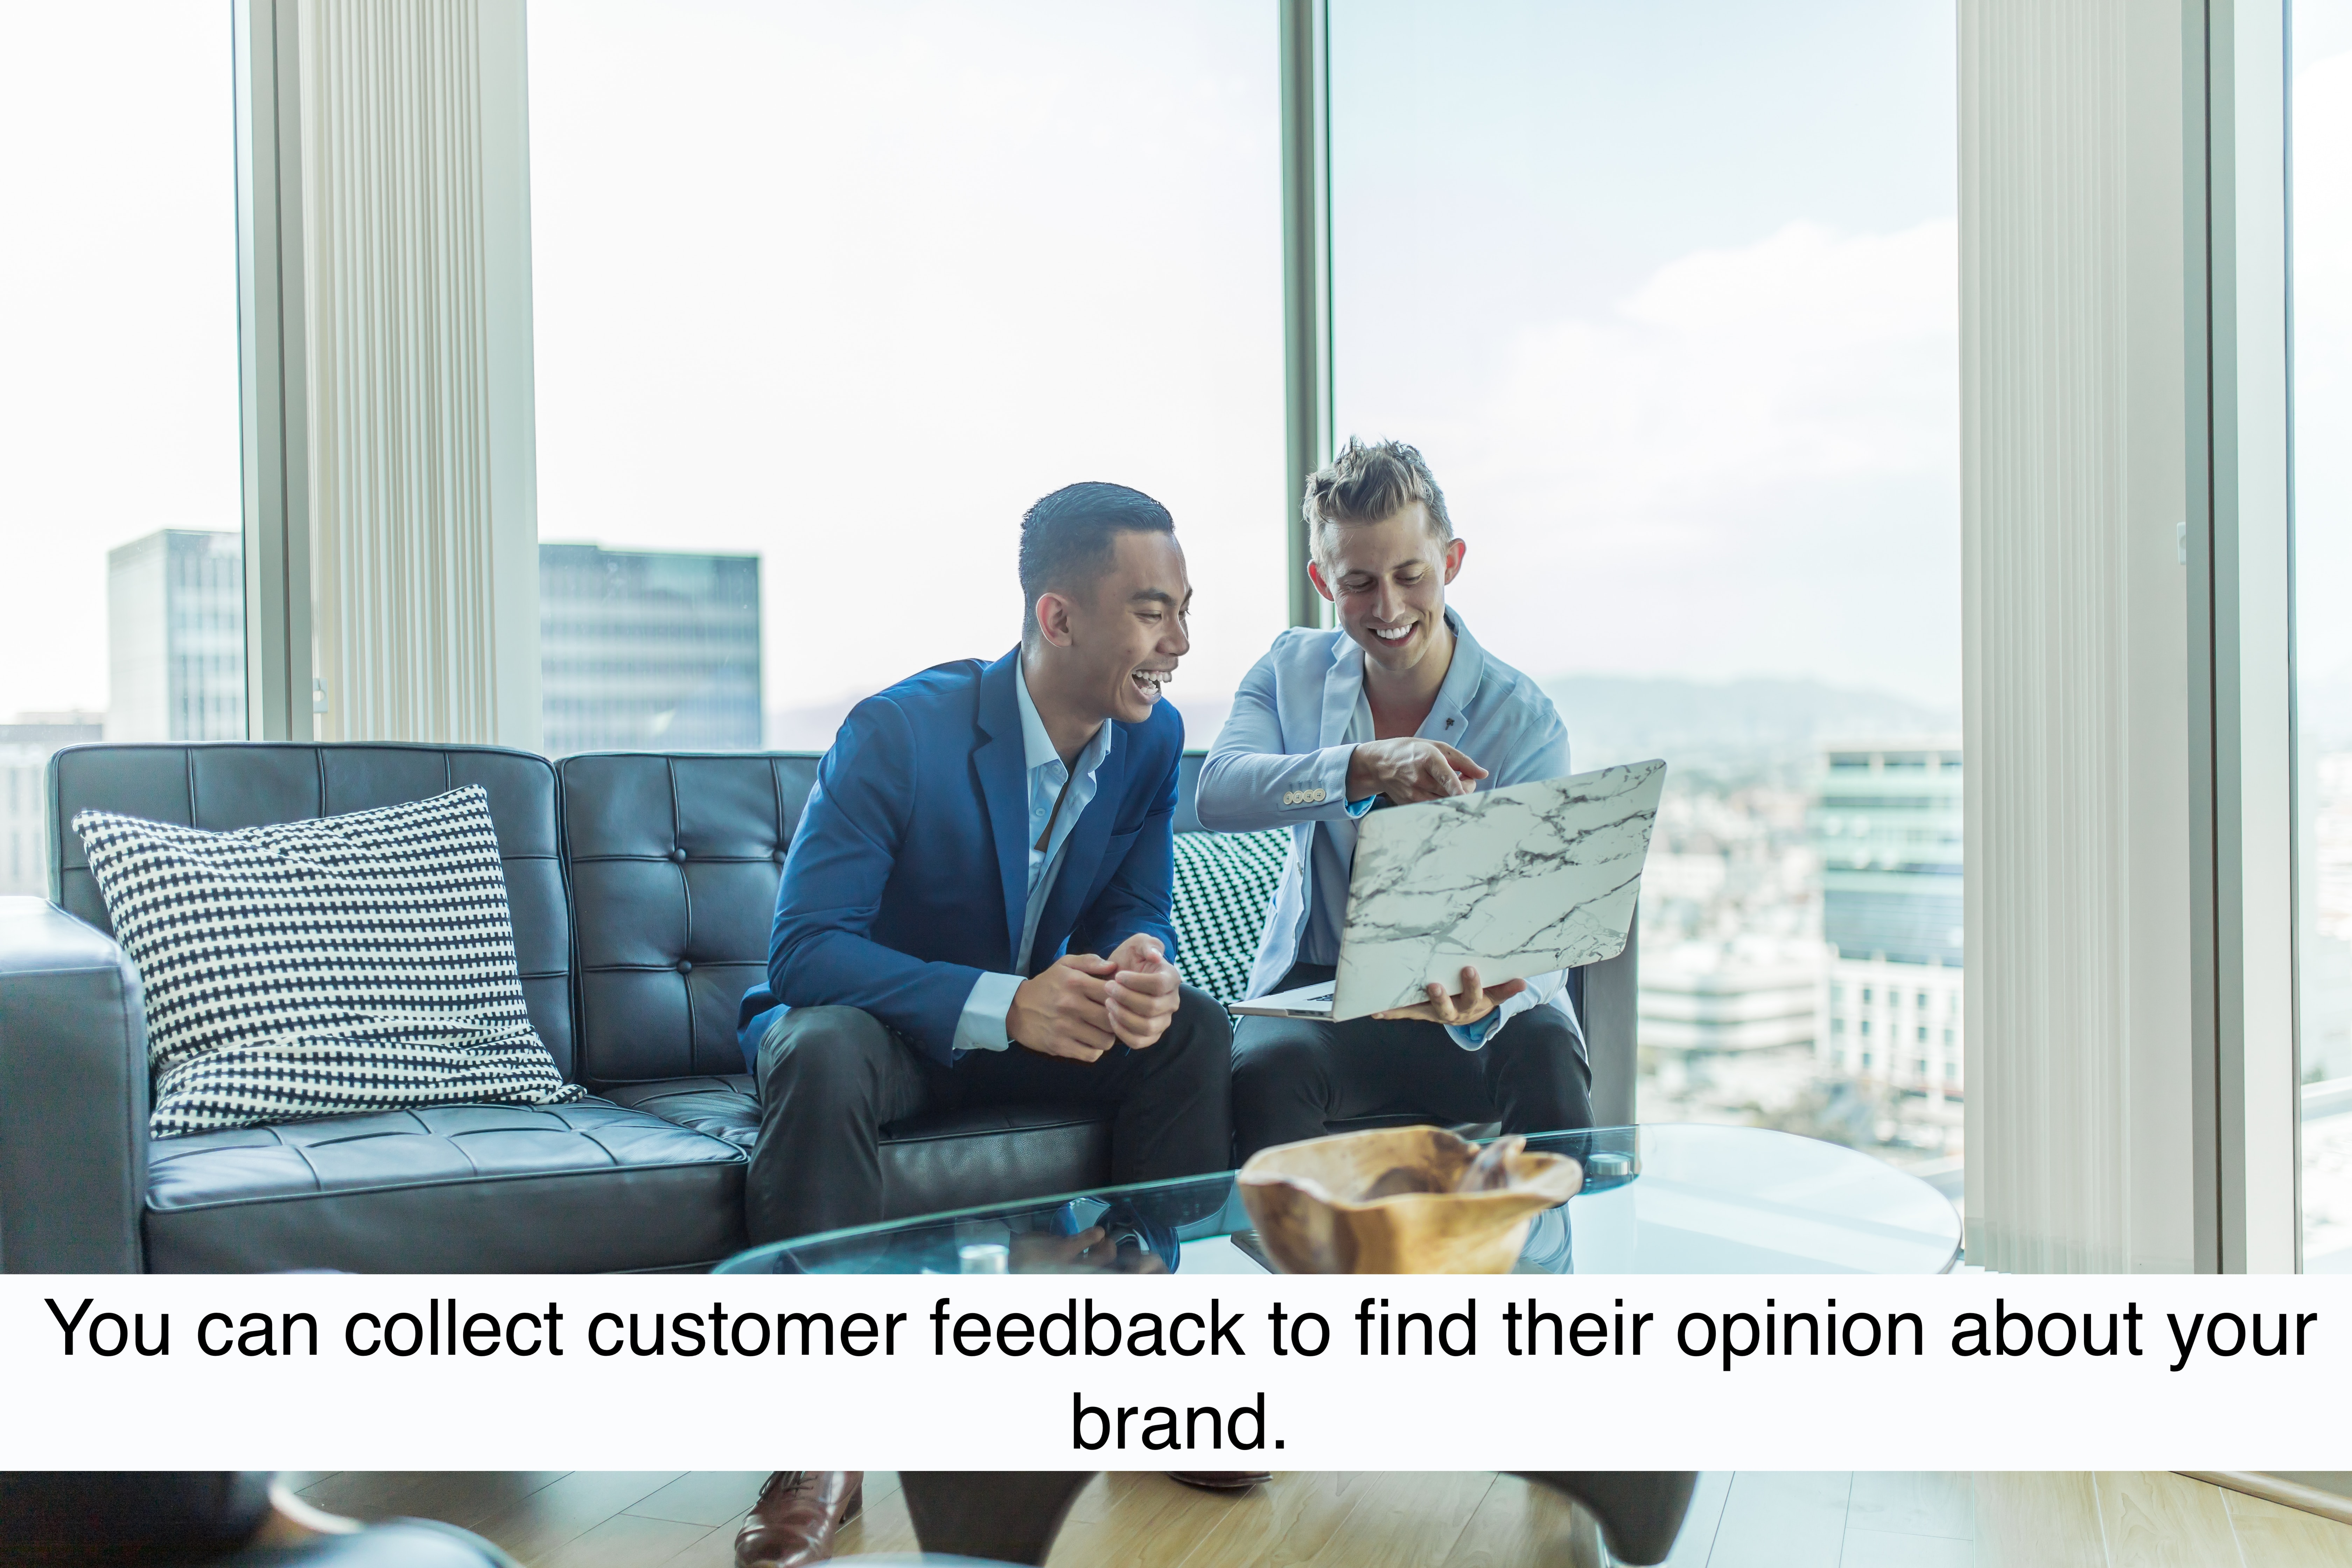 You can collect customer feedback to find their opinion about your brand.